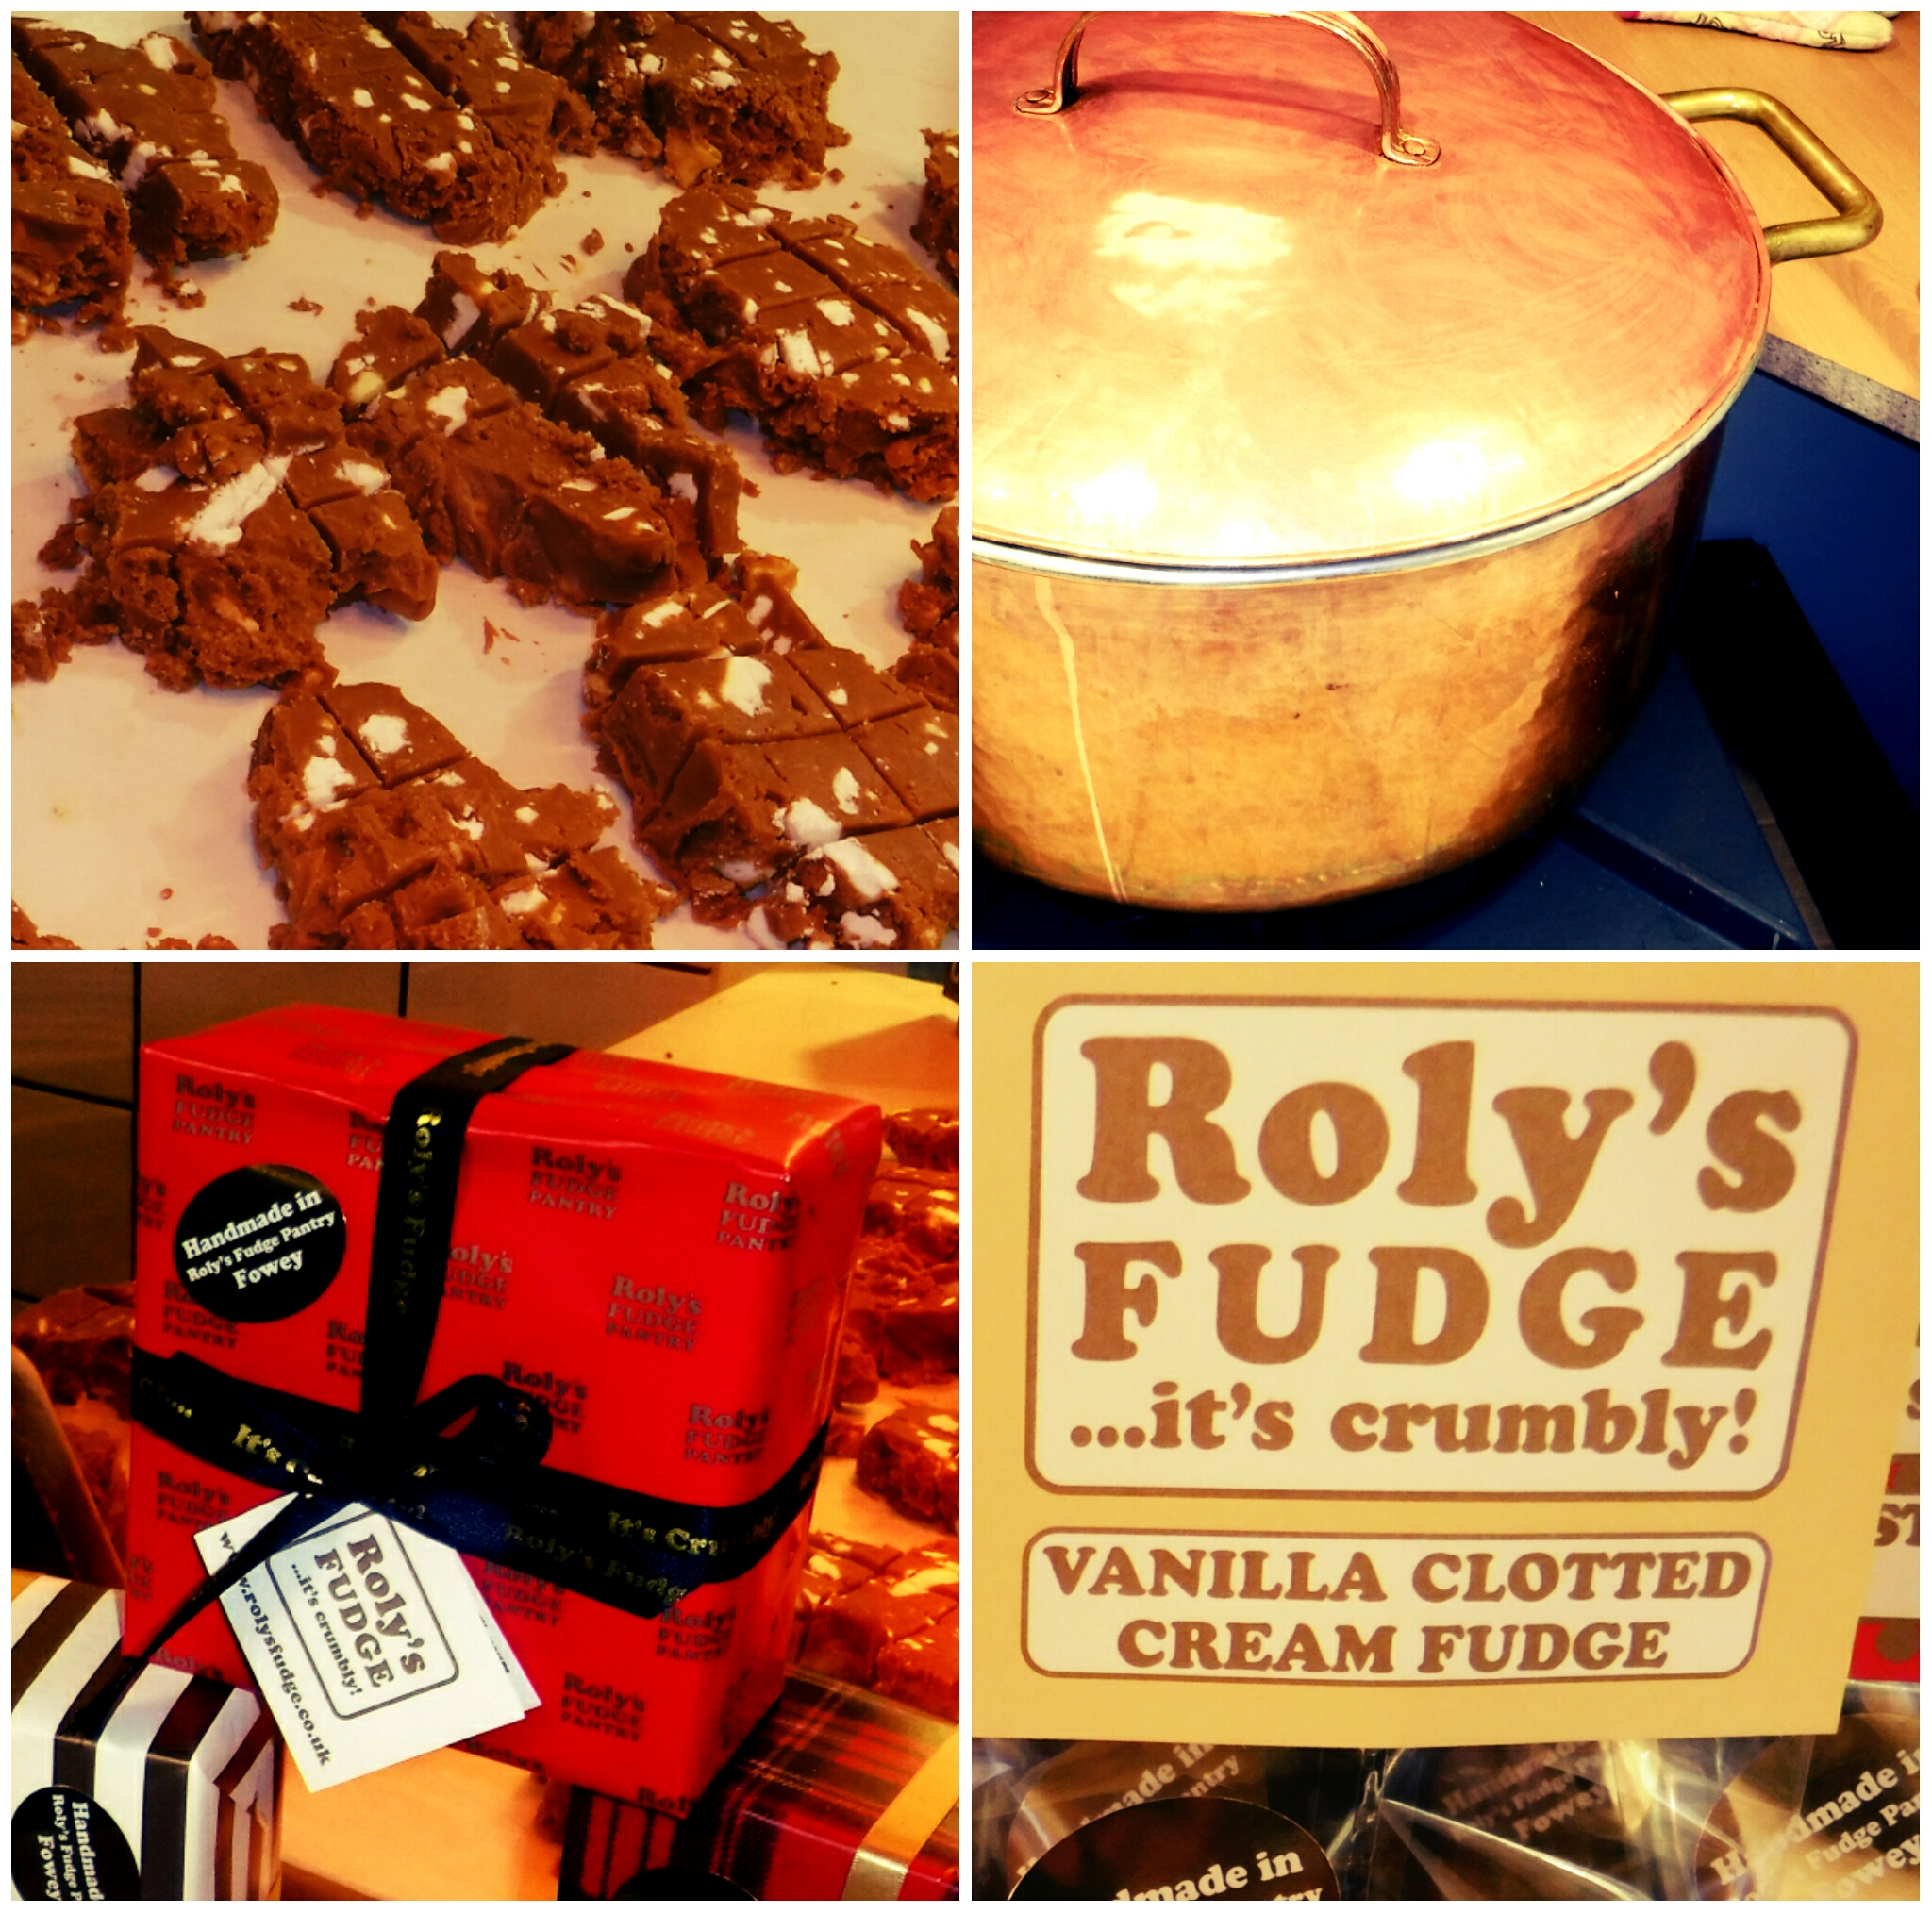 With the weather being as it is this weekend the shops in Fowey are doing well! One of the best newcomers this year is Roly's Fudge. Having spent a little over 40 years avoiding fudge I am finally a convert. Freshly made on the premises this stuff is amazing, there are plenty of samples on hand to try and once you've tasted 'Lemon Meringue' or the seasonal 'Christmas Pudding' flavour you will not leave empty handed!  Find out more at:https://rolysfudge.co.uk/ or https://twitter.com/RolysFudge